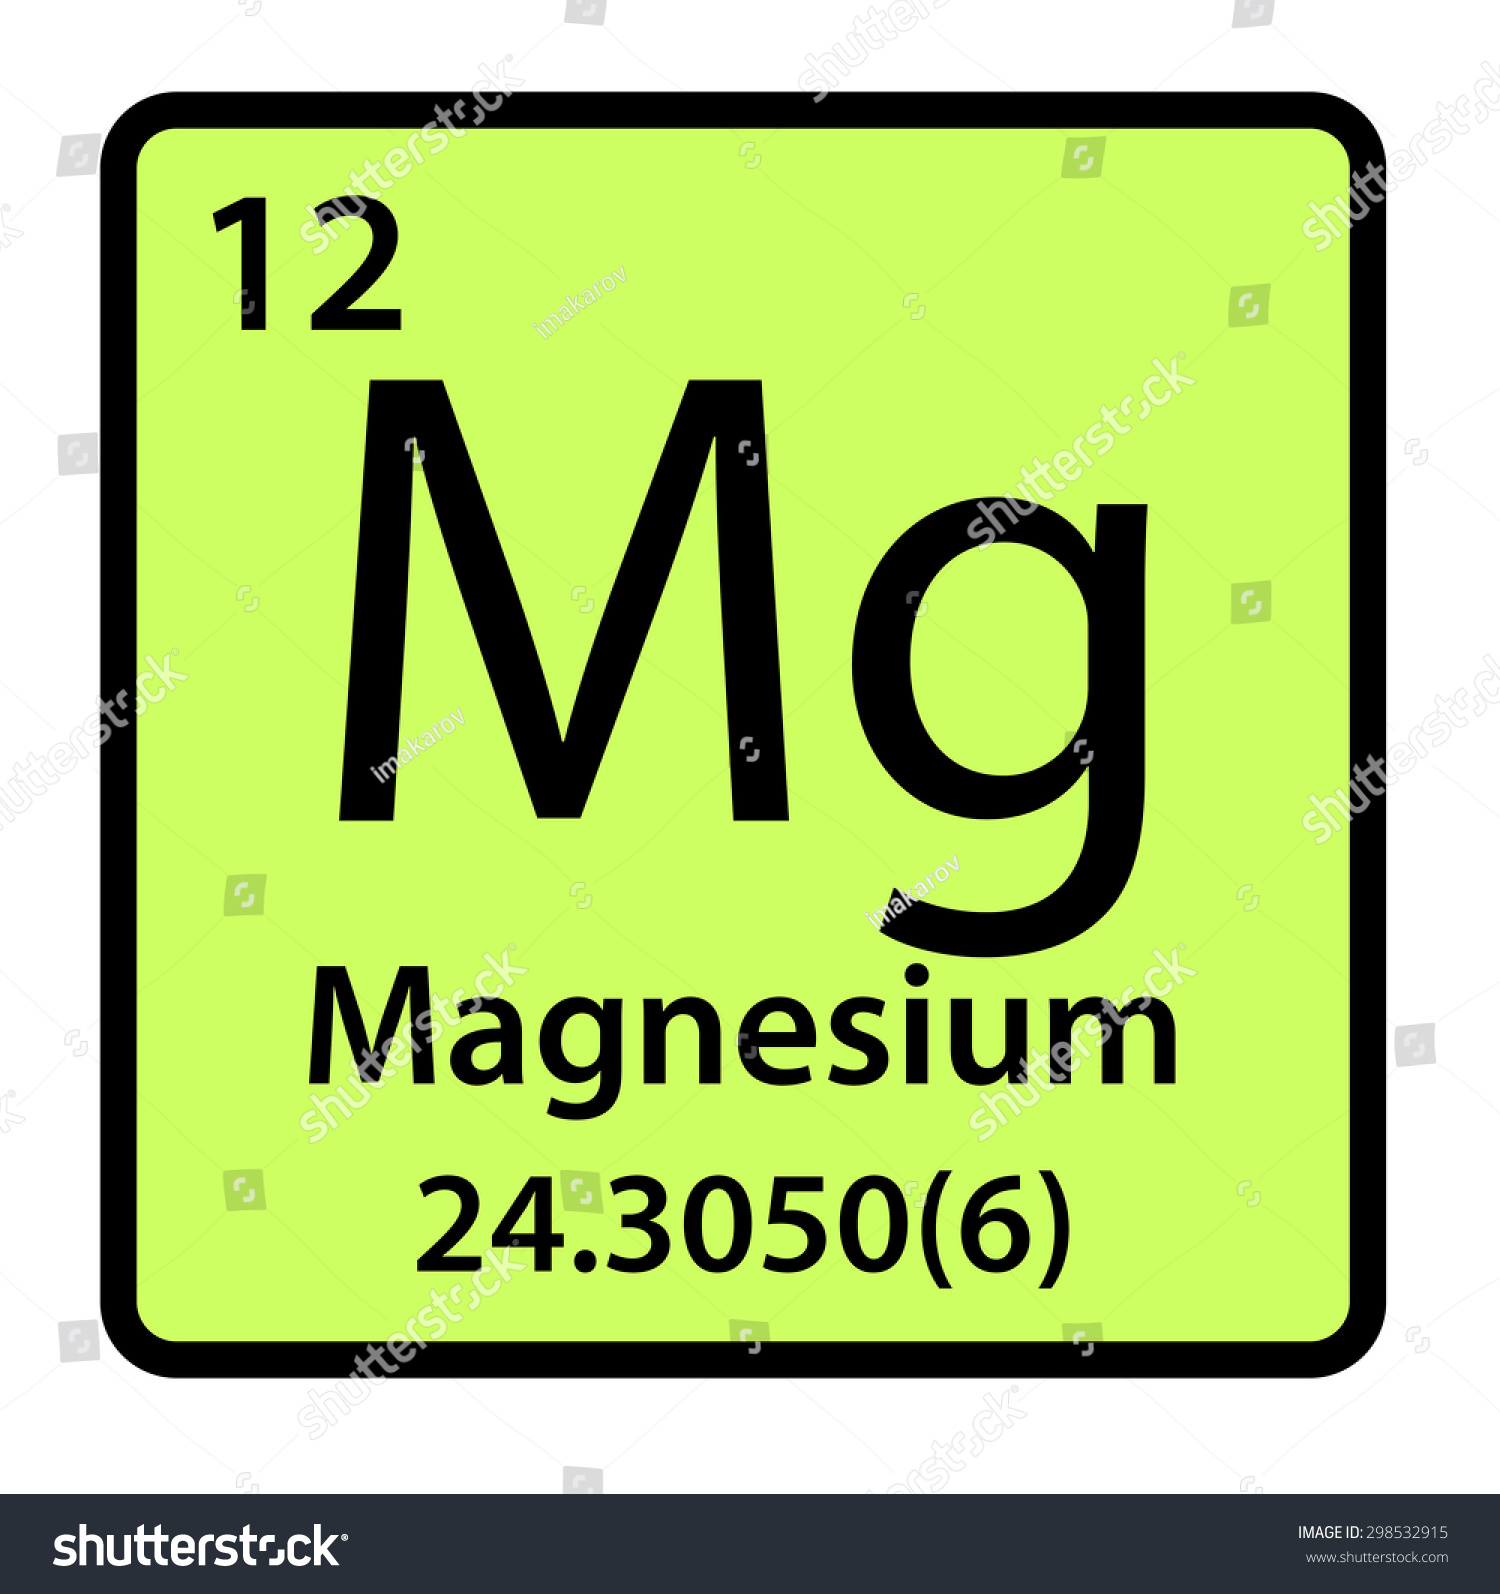 Magnesium on the periodic table images periodic table images magnesium on the periodic table gallery periodic table images magnesium on the periodic table image collections gamestrikefo Gallery